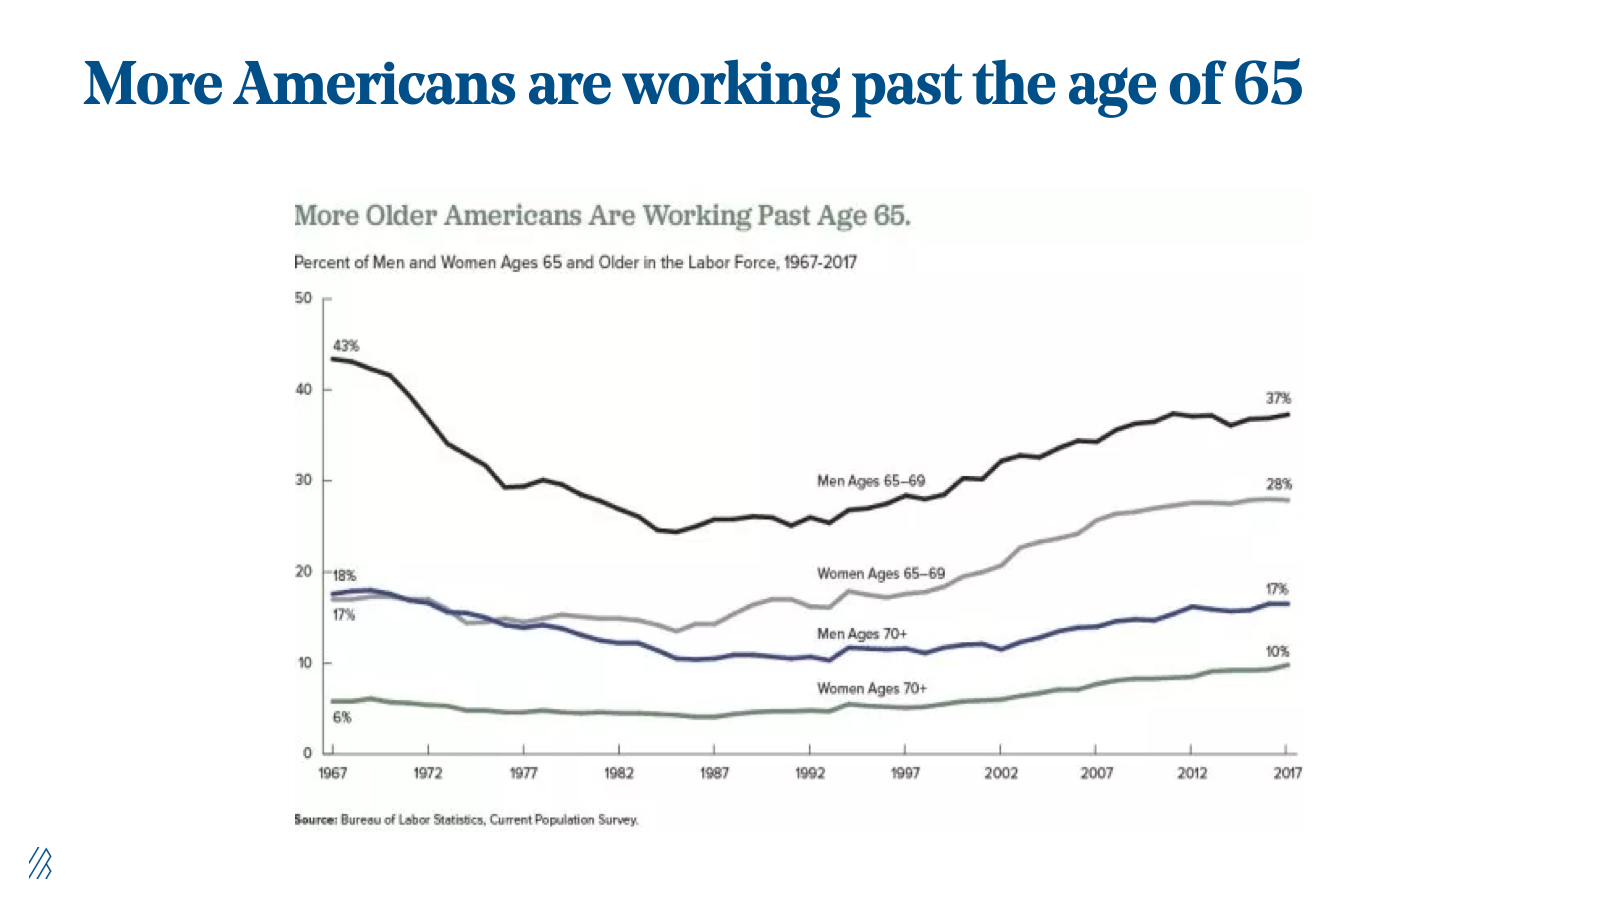 More Americans are working past the age of 65